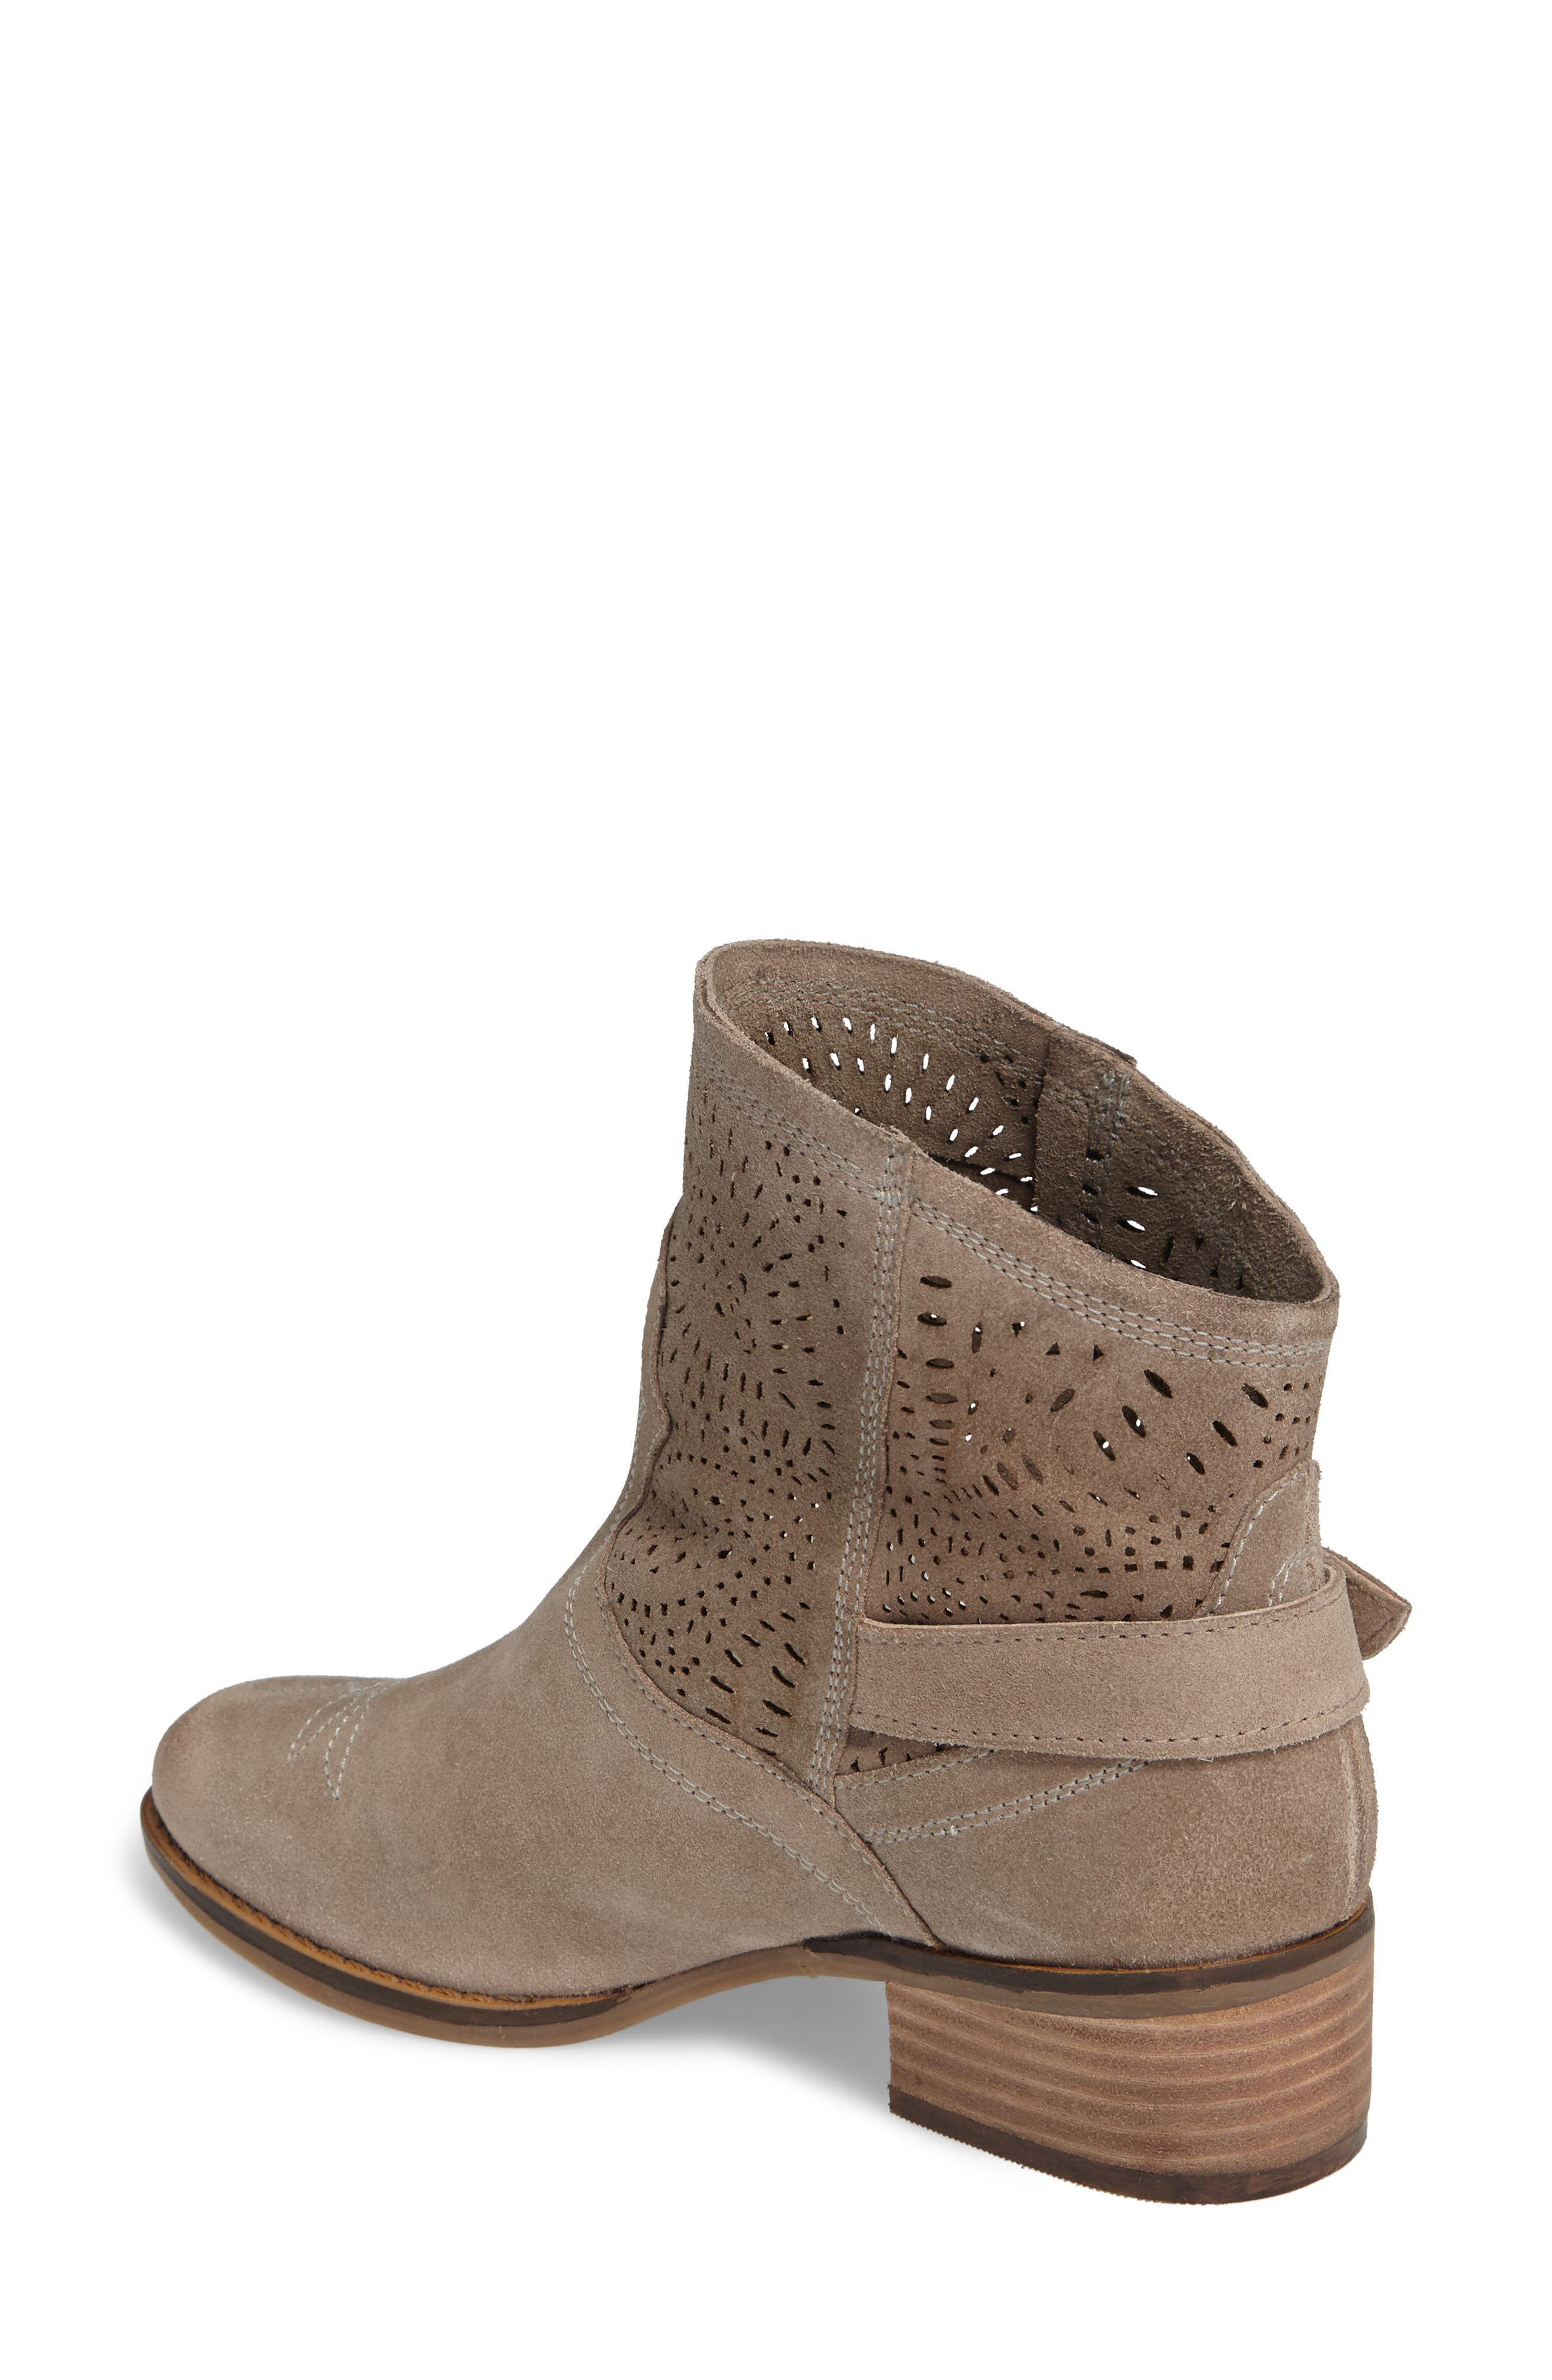 Zoey Perforated Bootie,                             Alternate thumbnail 7, color,